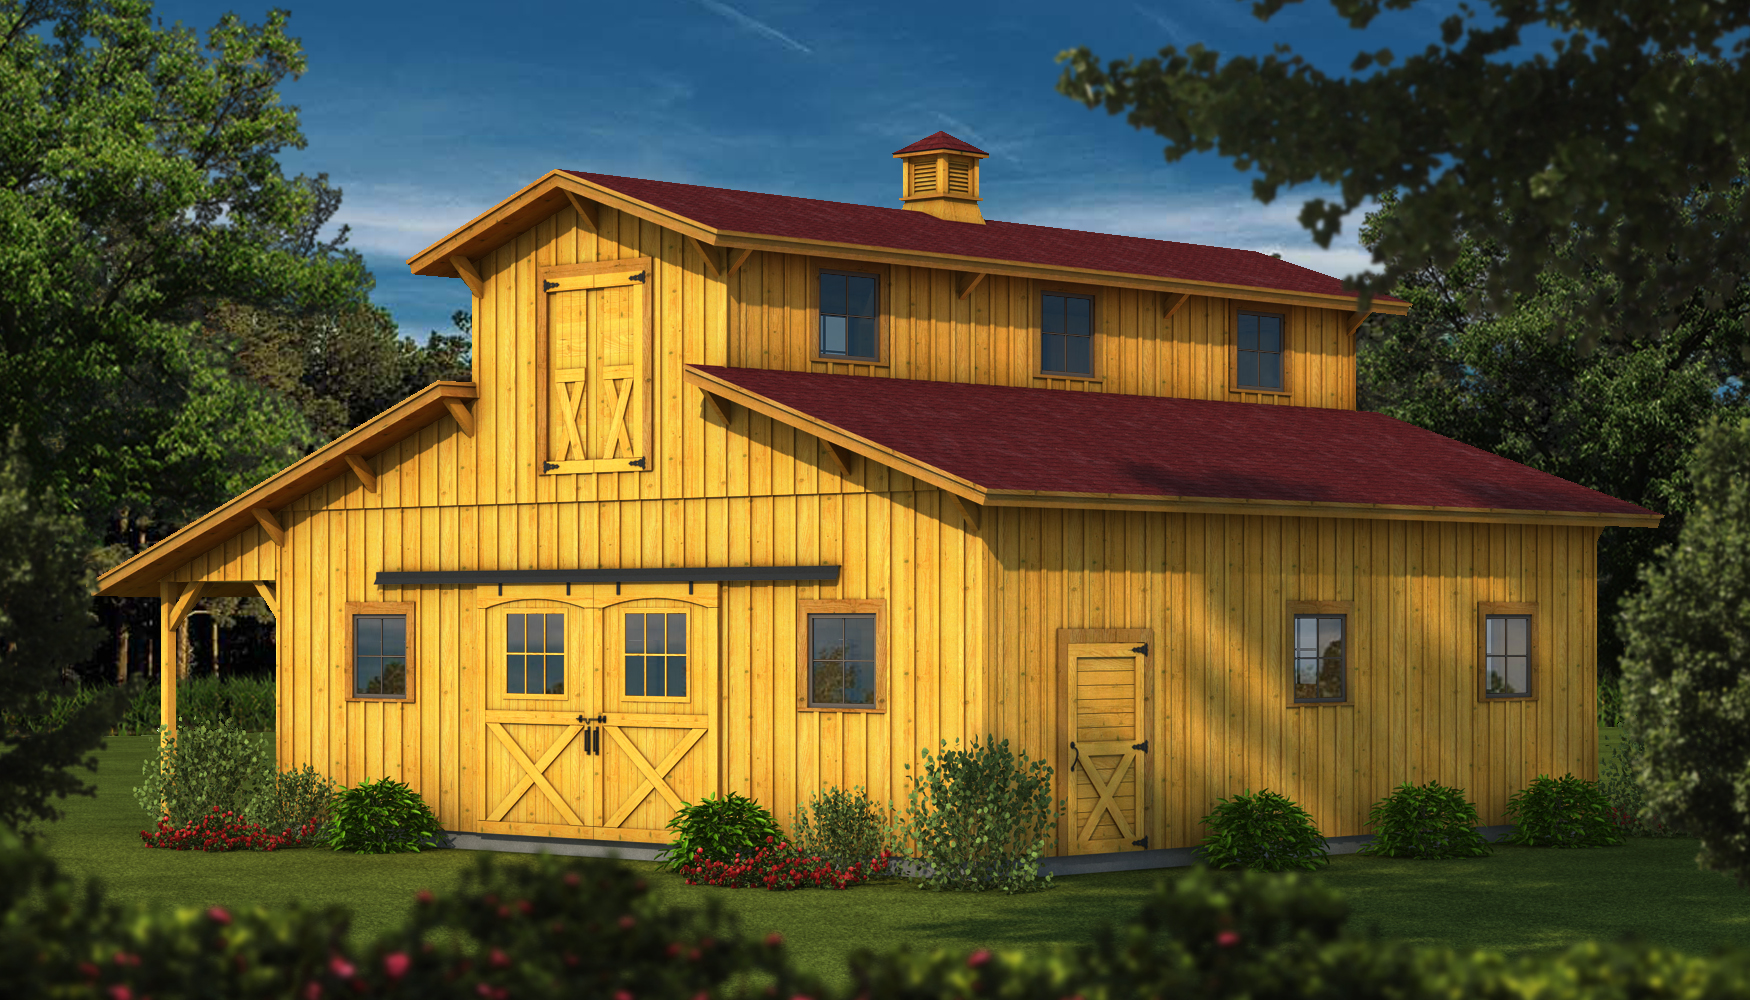 Southland launches classic wood barn kits for Pole barn home kits indiana